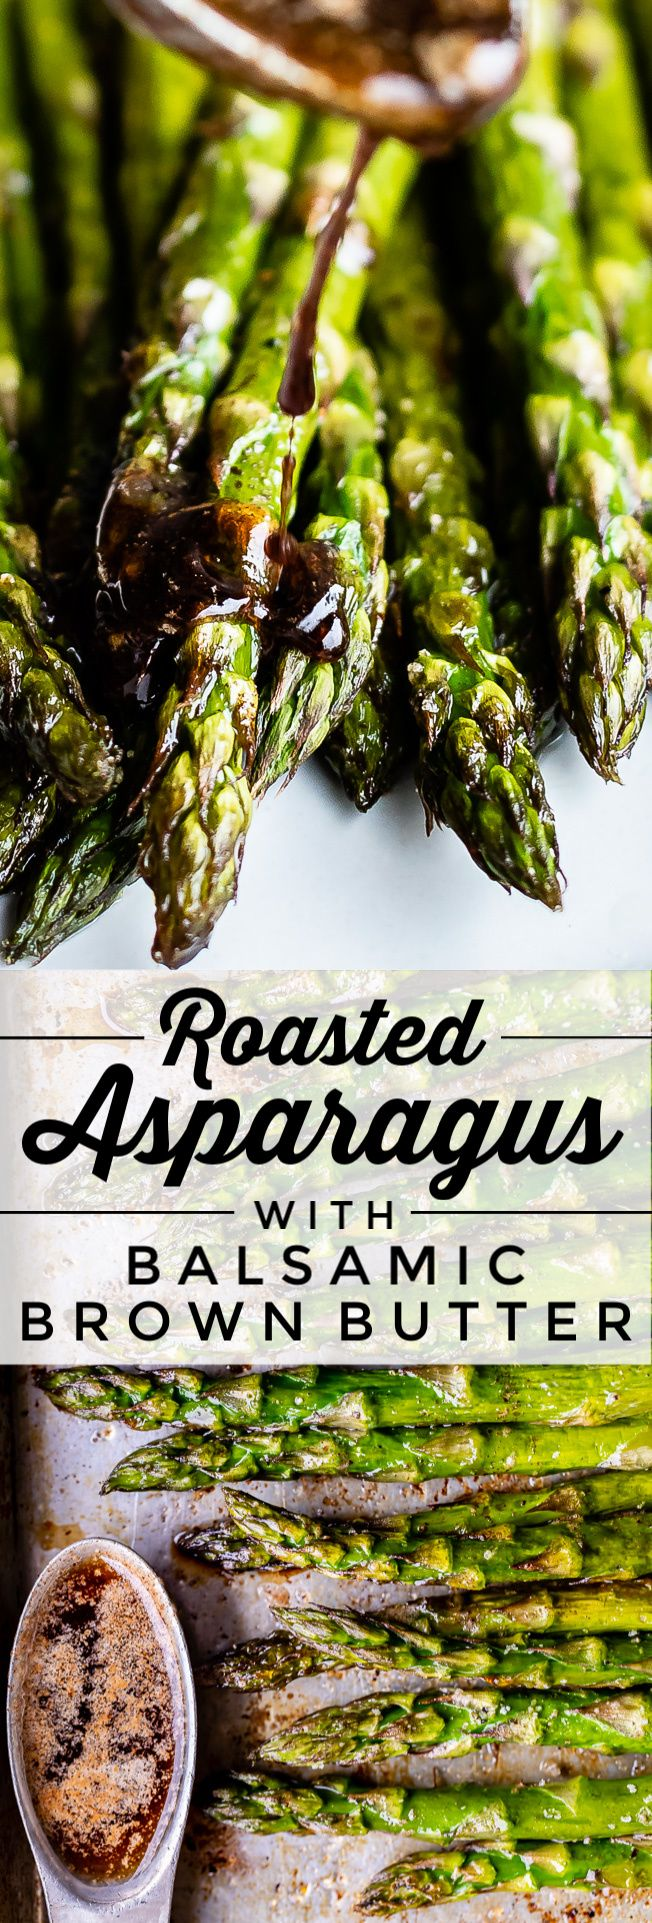 Oven Roasted Asparagus with Balsamic Browned Butter from The Food Charlatan This is handsdown my FAVORITE way to eat asparagus What is it about oven roasted asparagus tha...